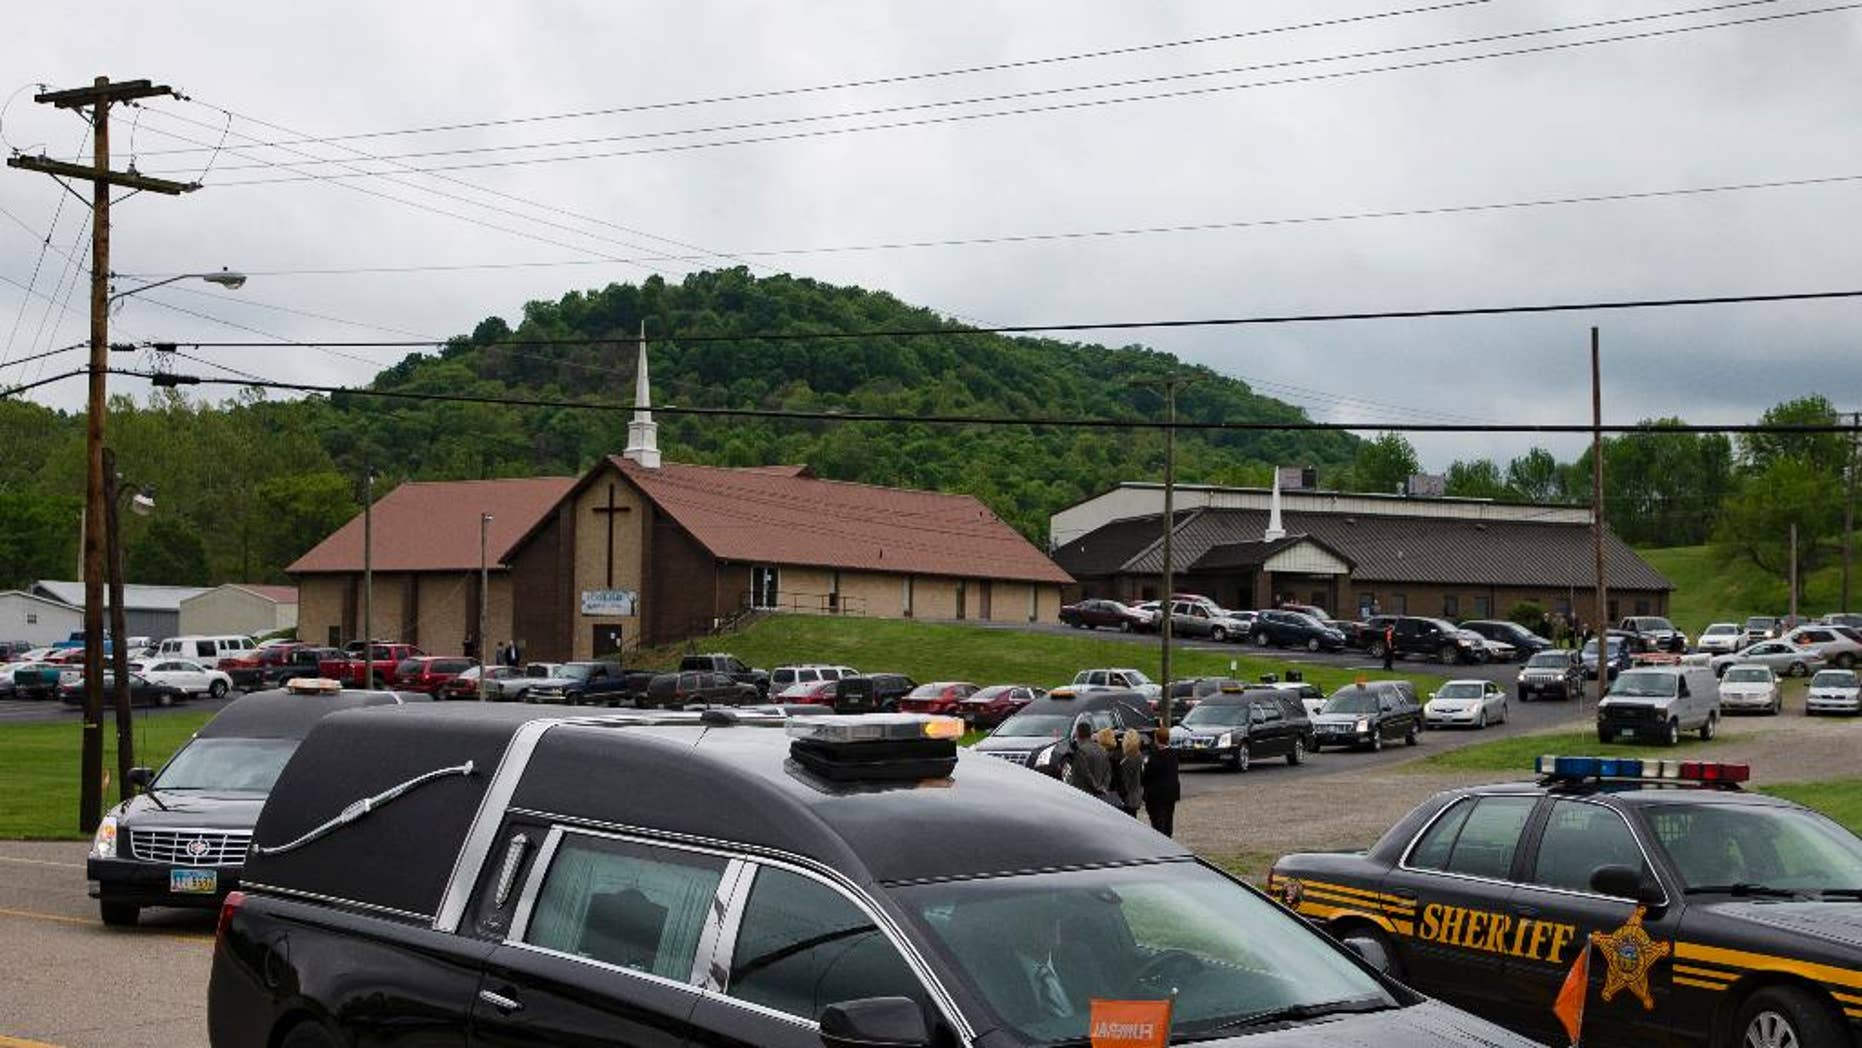 FILE – In this May 3, 2016, file photo, hearses for six of the eight members of the Rhoden family found shot April 22, 2016, at four properties near Piketon, Ohio, depart during funeral services from Dry Run Church of Christ in West Portsmouth, Ohio. The Ohio Supreme Court on Wednesday, April 19, 2017, ordered the Pike County coroner to submit unredacted autopsy reports from the unsolved slayings for justices to review outside of public view, as the court considers media lawsuits seeking access to those full reports. (AP Photo/John Minchillo, File)